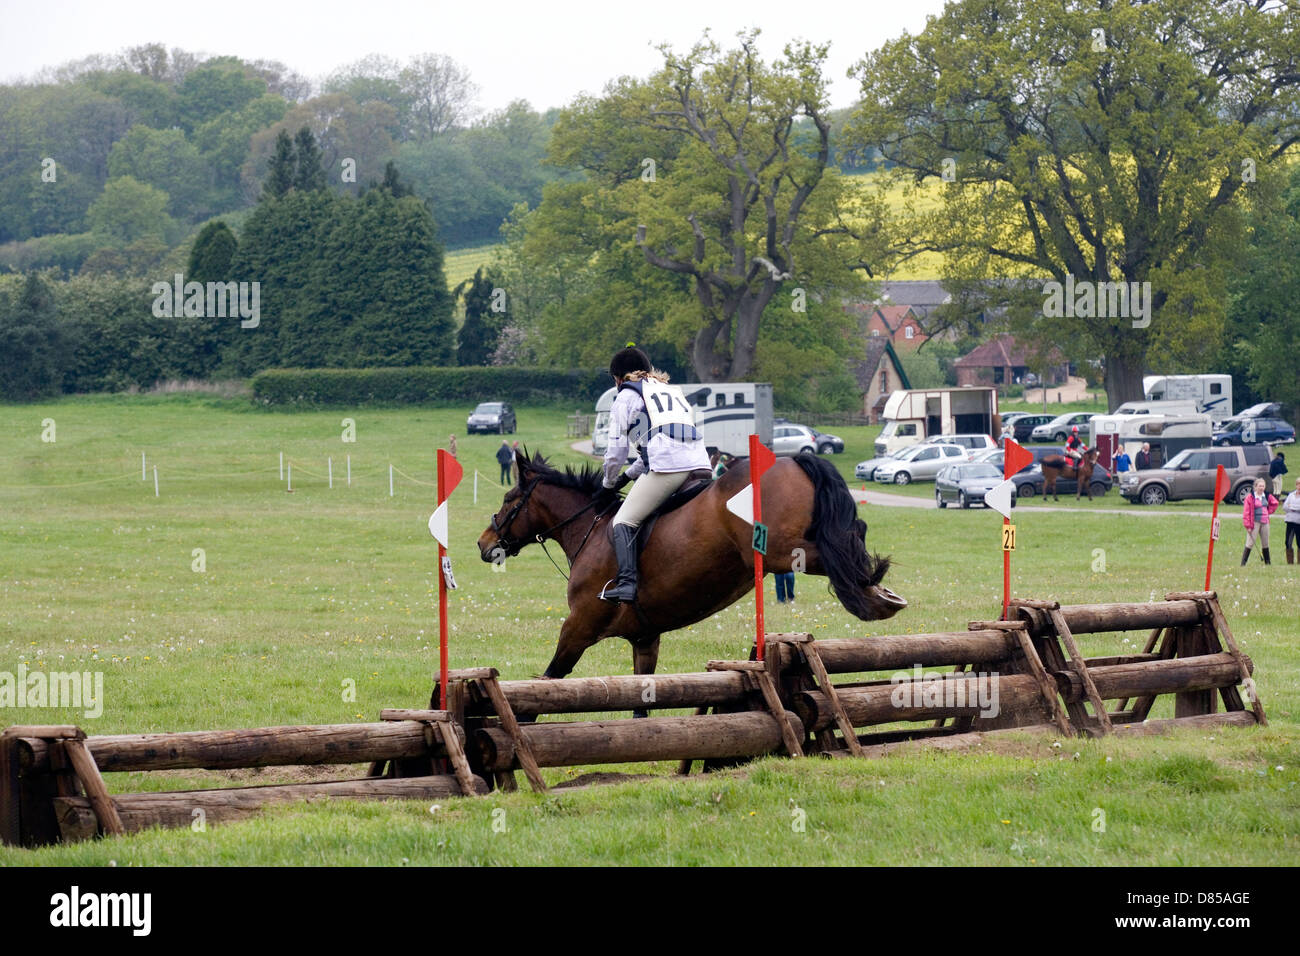 Hampshire: Equestrian cross-country event - Stock Image